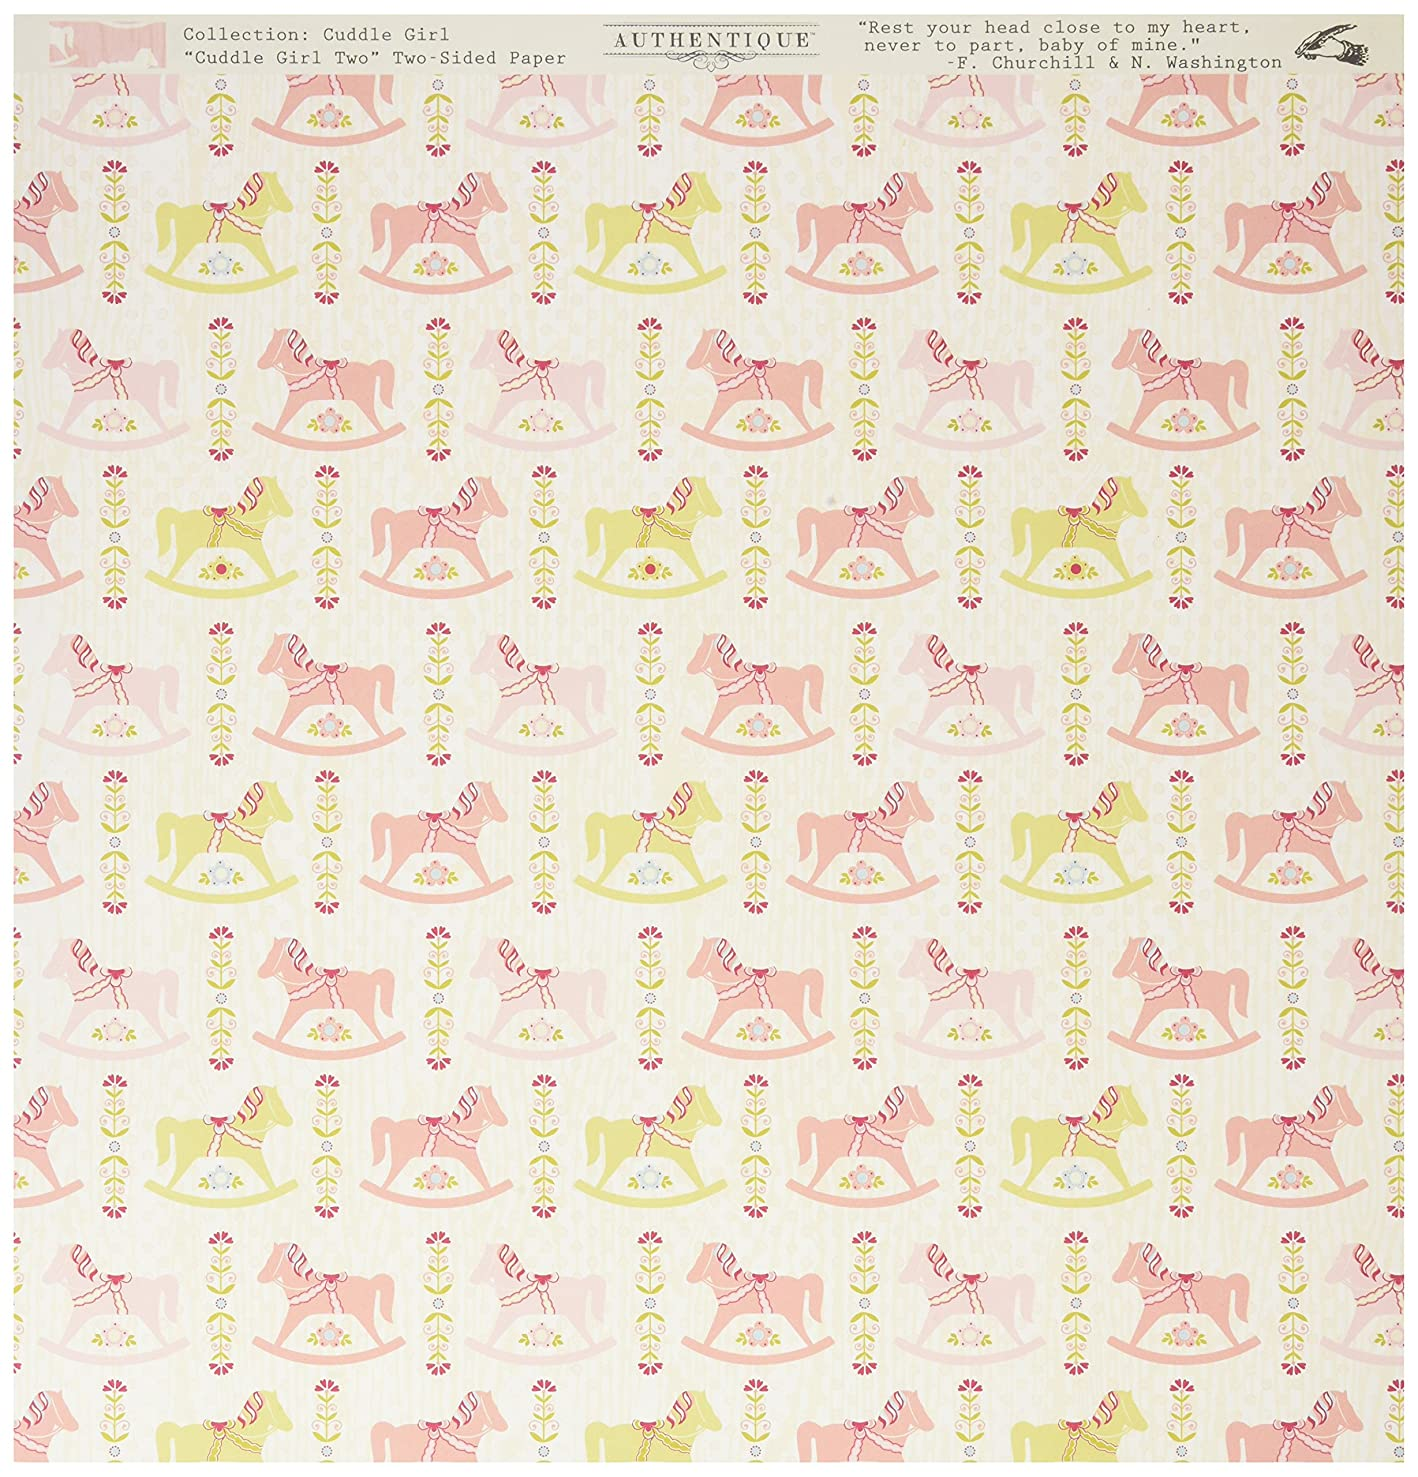 Authentique Paper GCD002 Cuddle Girl Double-Sided Cardstock No 2 Multicolor Rocking Horse/Mini Pink (18 Sheets Per Pack), 12